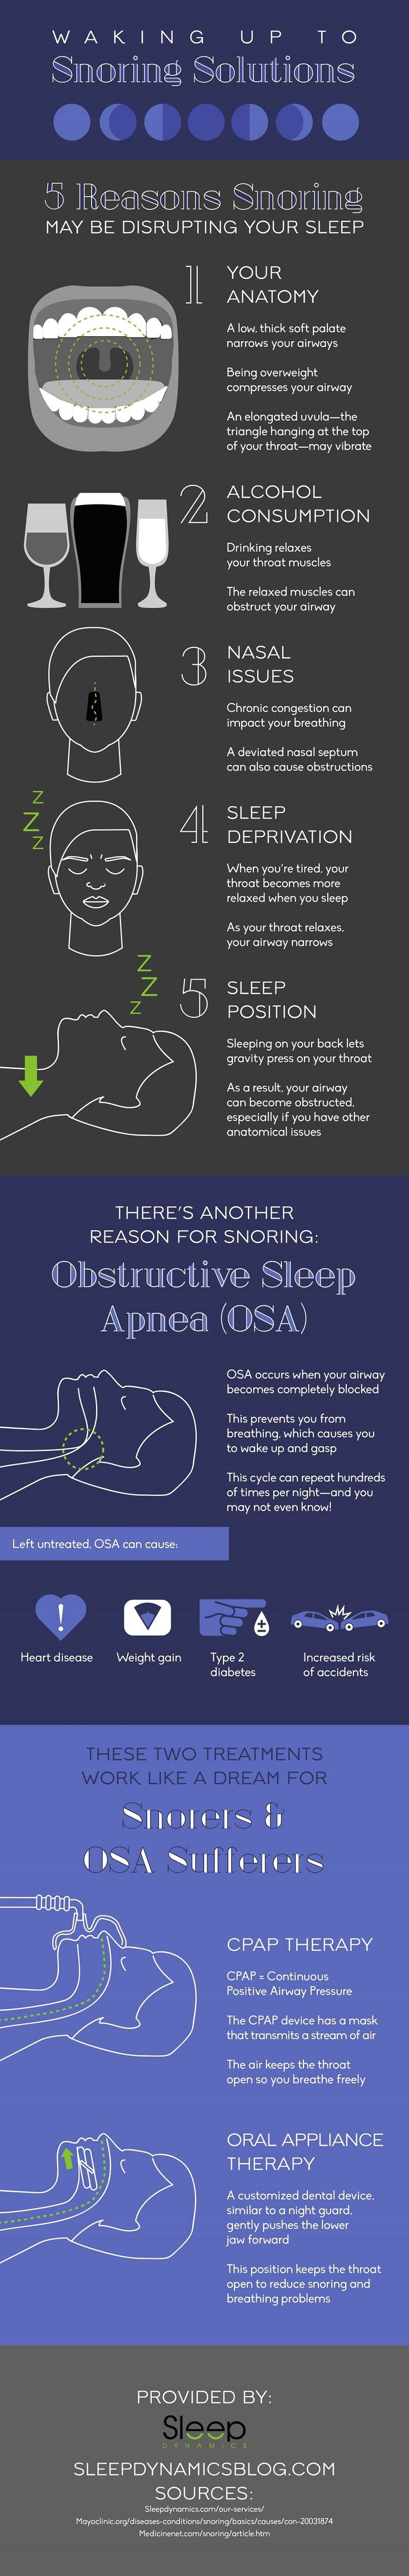 Oral appliance therapy uses a custom device to manipulate the lower jaw and open up your airways. Look at this infographic to find out what other treatments work for sleep apnea!